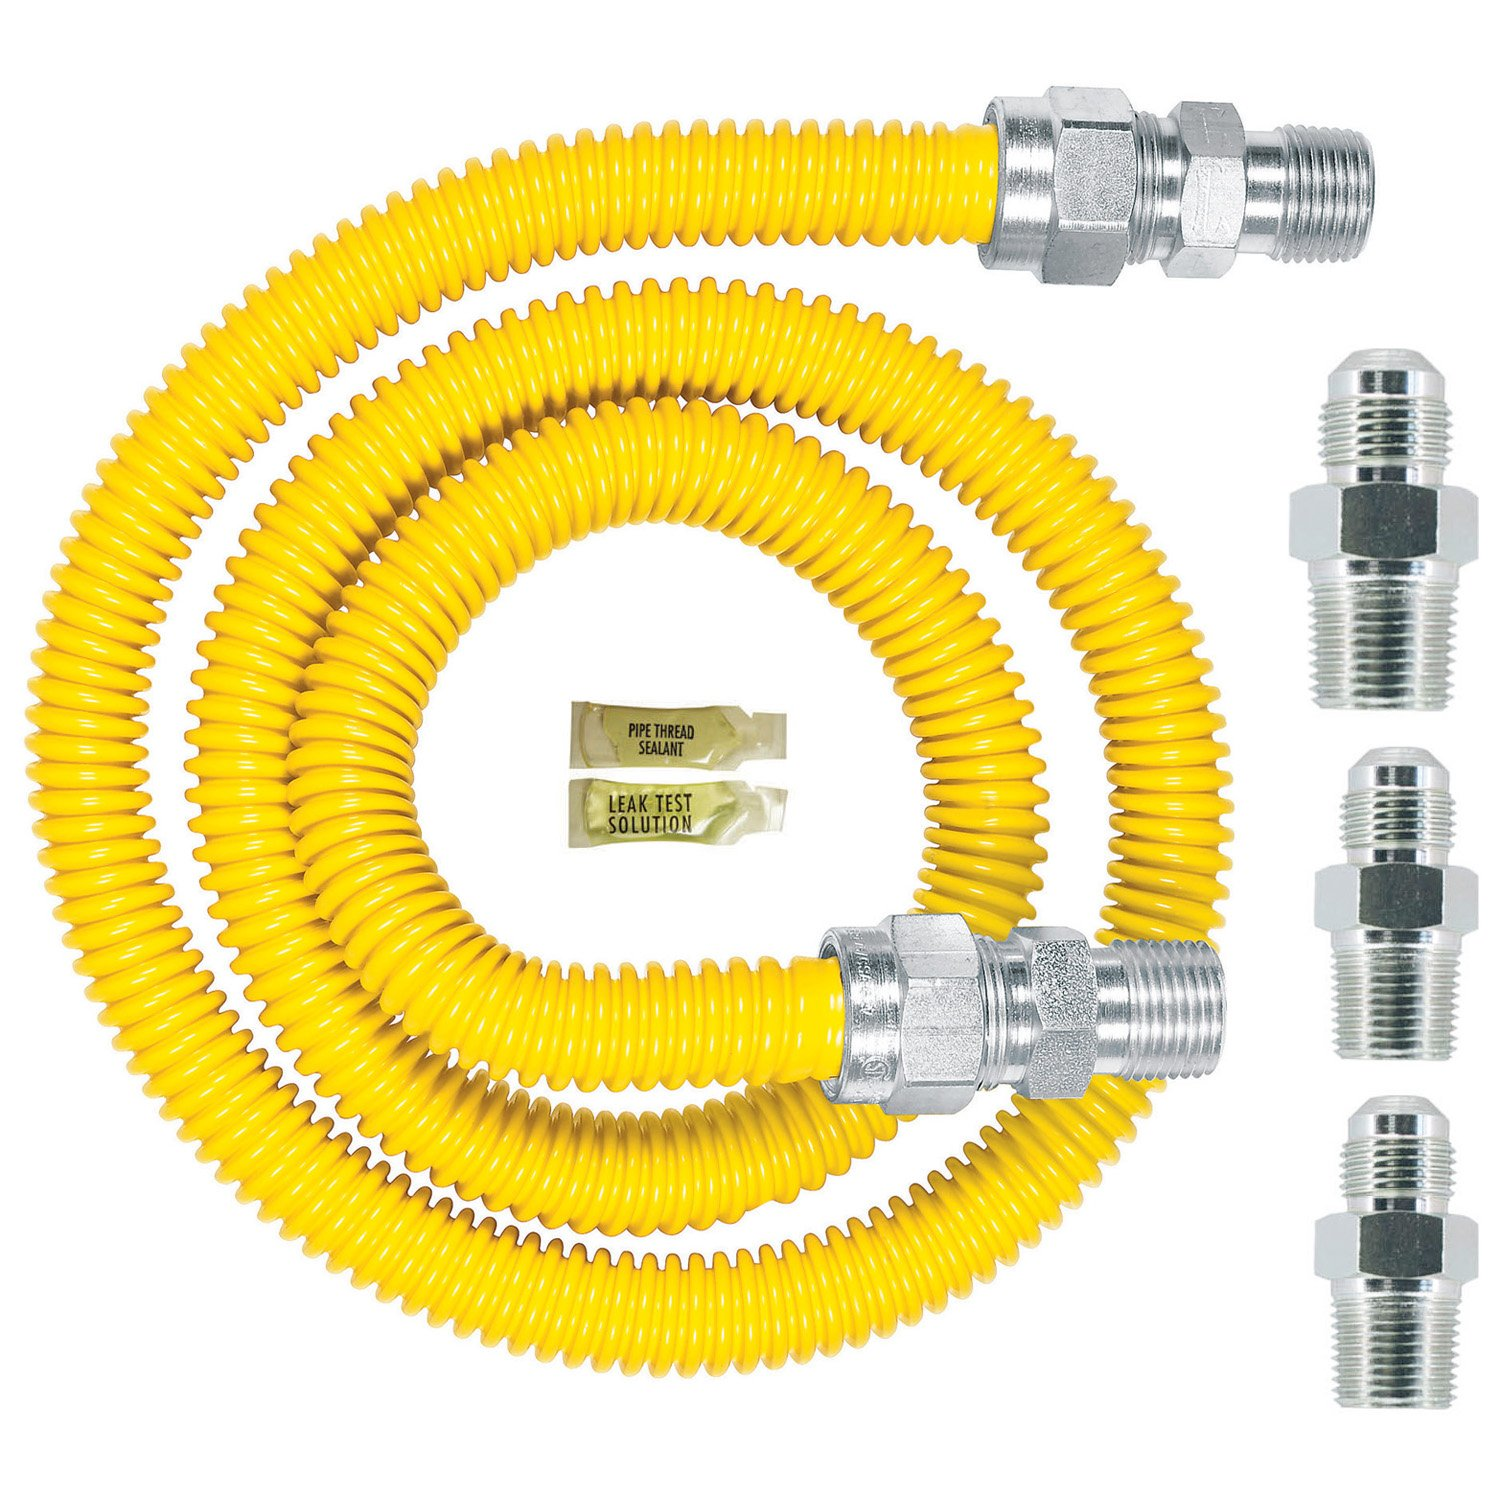 Dormont 0240892 Gas ApplianceConnectorKit, 48 In. Long 5/8 In. Outlet Diameter, Yellow Coated by Dormont